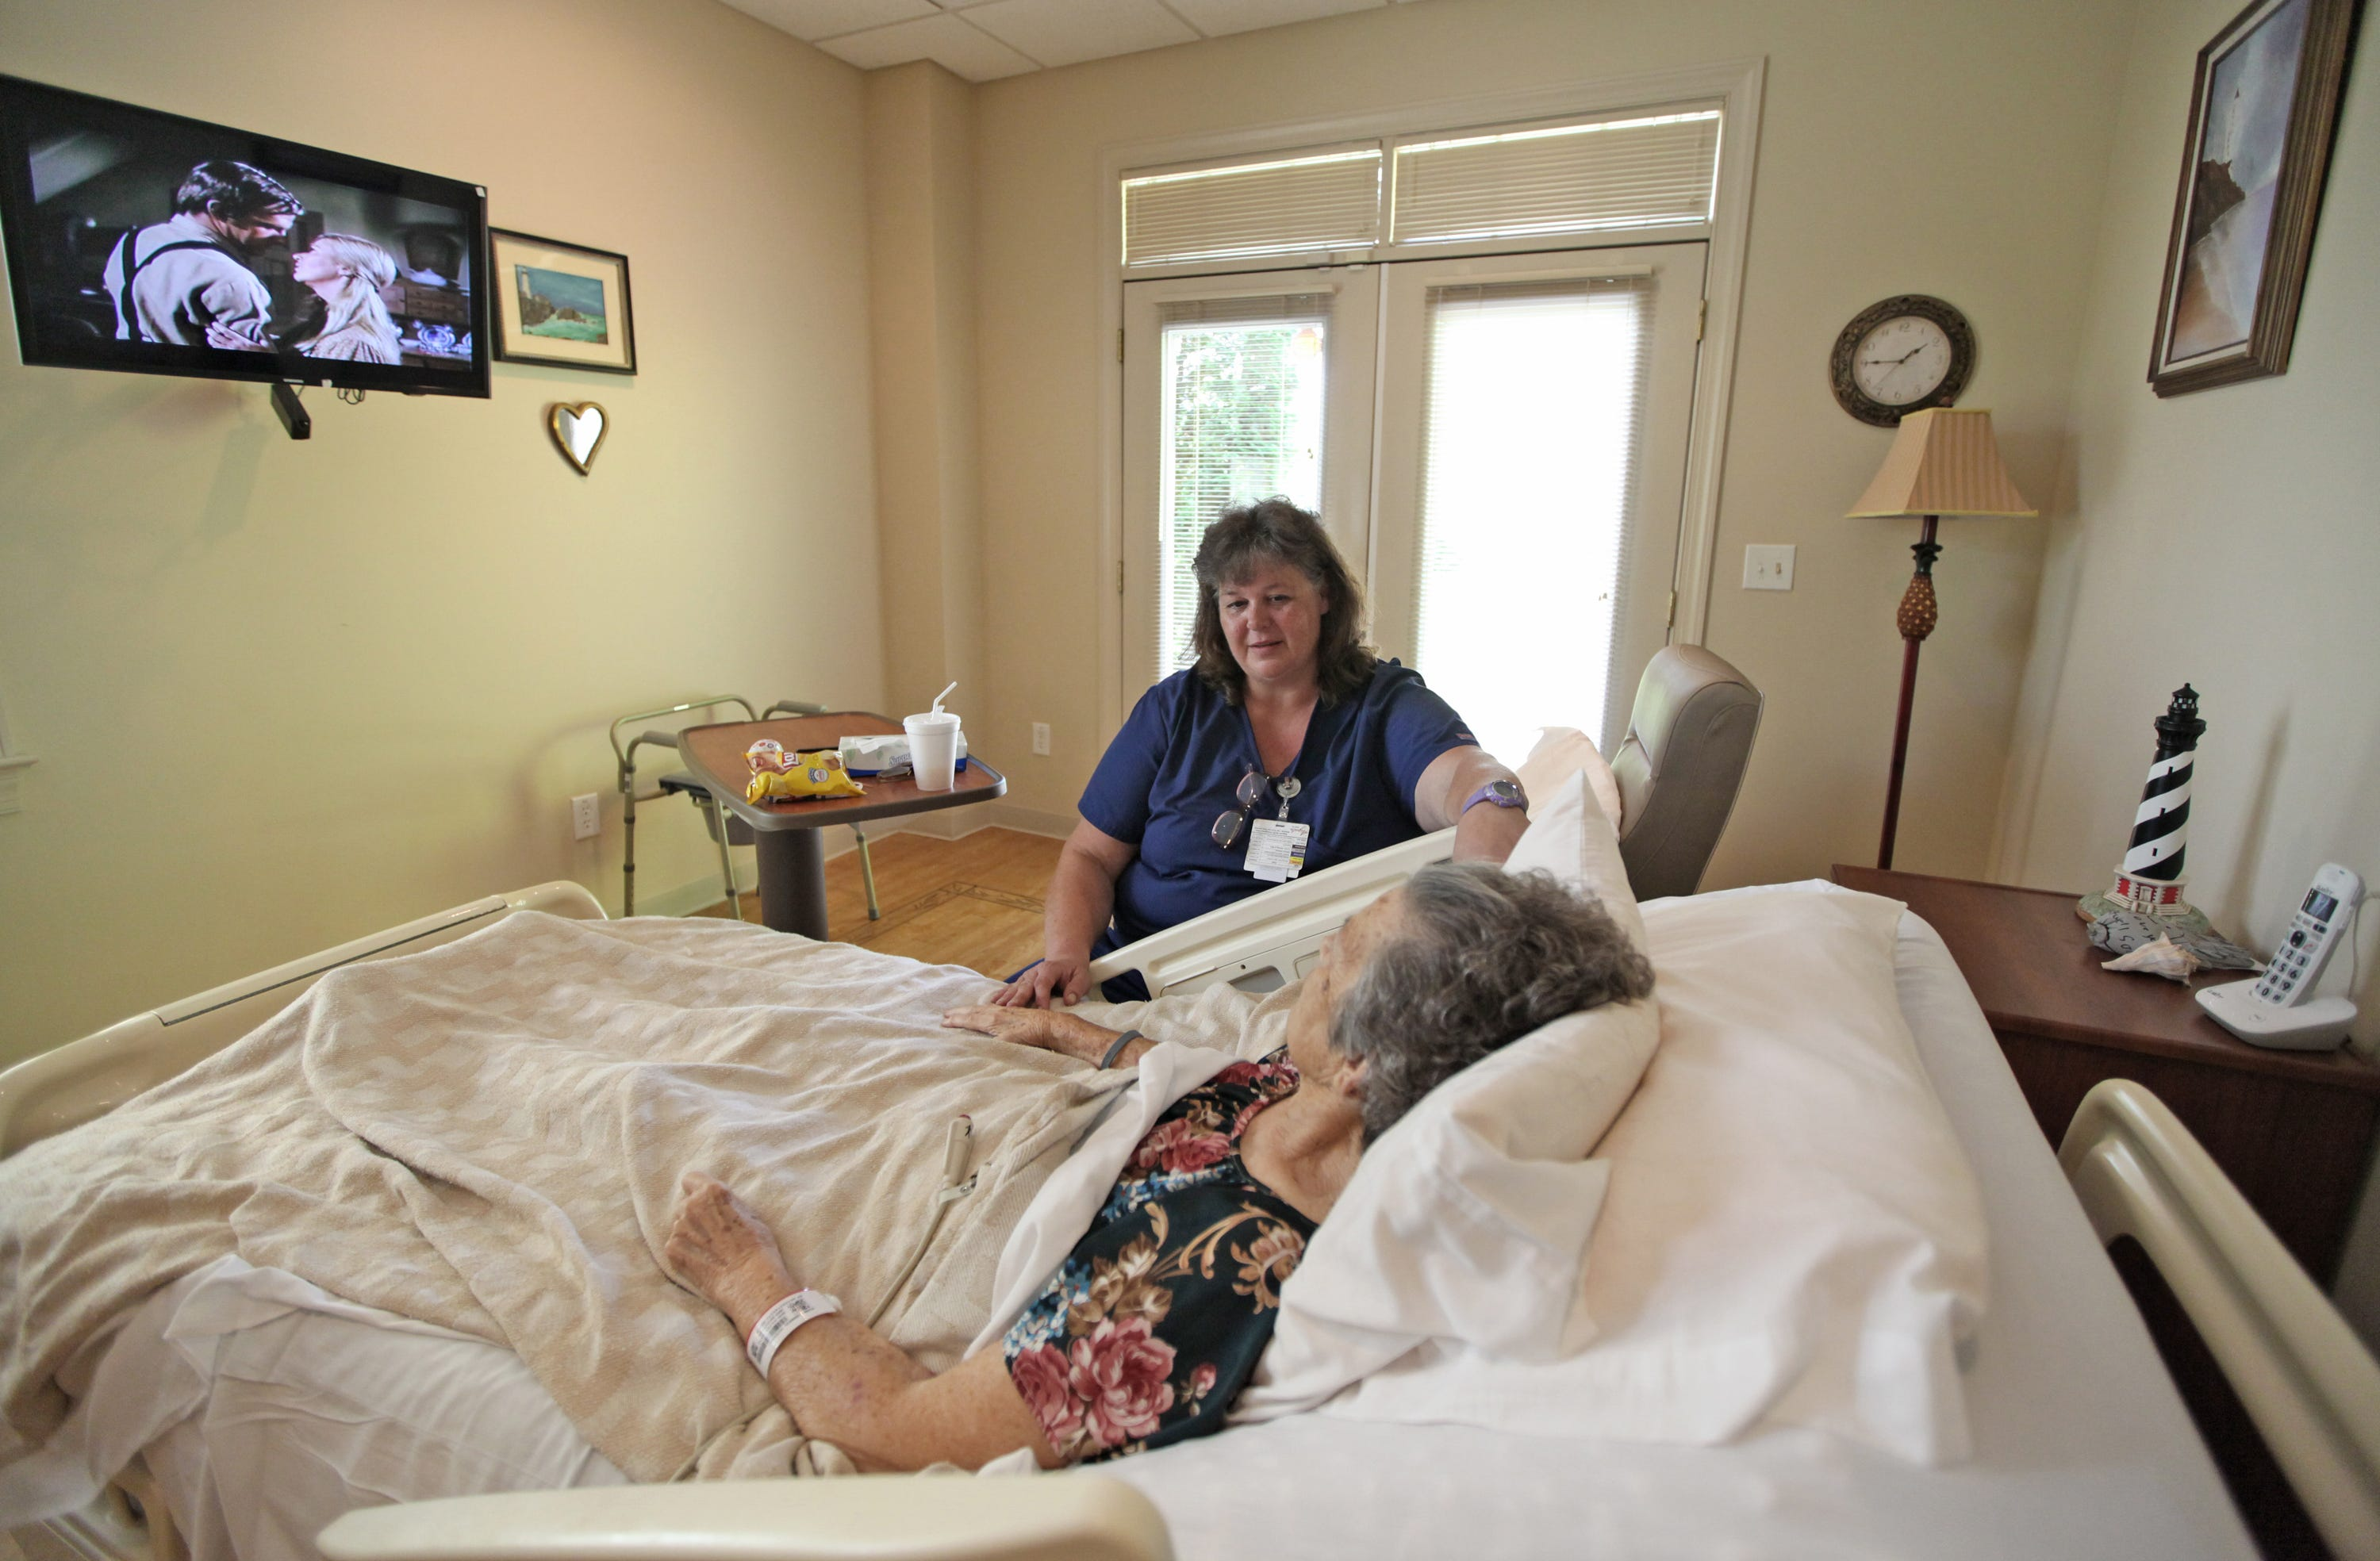 """Jody Warwick, a nurse at Augusta Health's Shenandoah House, meets with patient Geneva Wimer. Warwick was managing Wimer's colon cancer treatment and preparing her to transition back home. Shenandoah House provides assistance for patients during their end-of-life care.  """"The hope of hospice is to get patients home,"""" Warwick said, and in Wimer's case they were able to do that.  Shenandoah House also offers respite care. A hospice patient may stay for a week to give the primary caregivers some time off from the rigors of taking care of a loved one."""